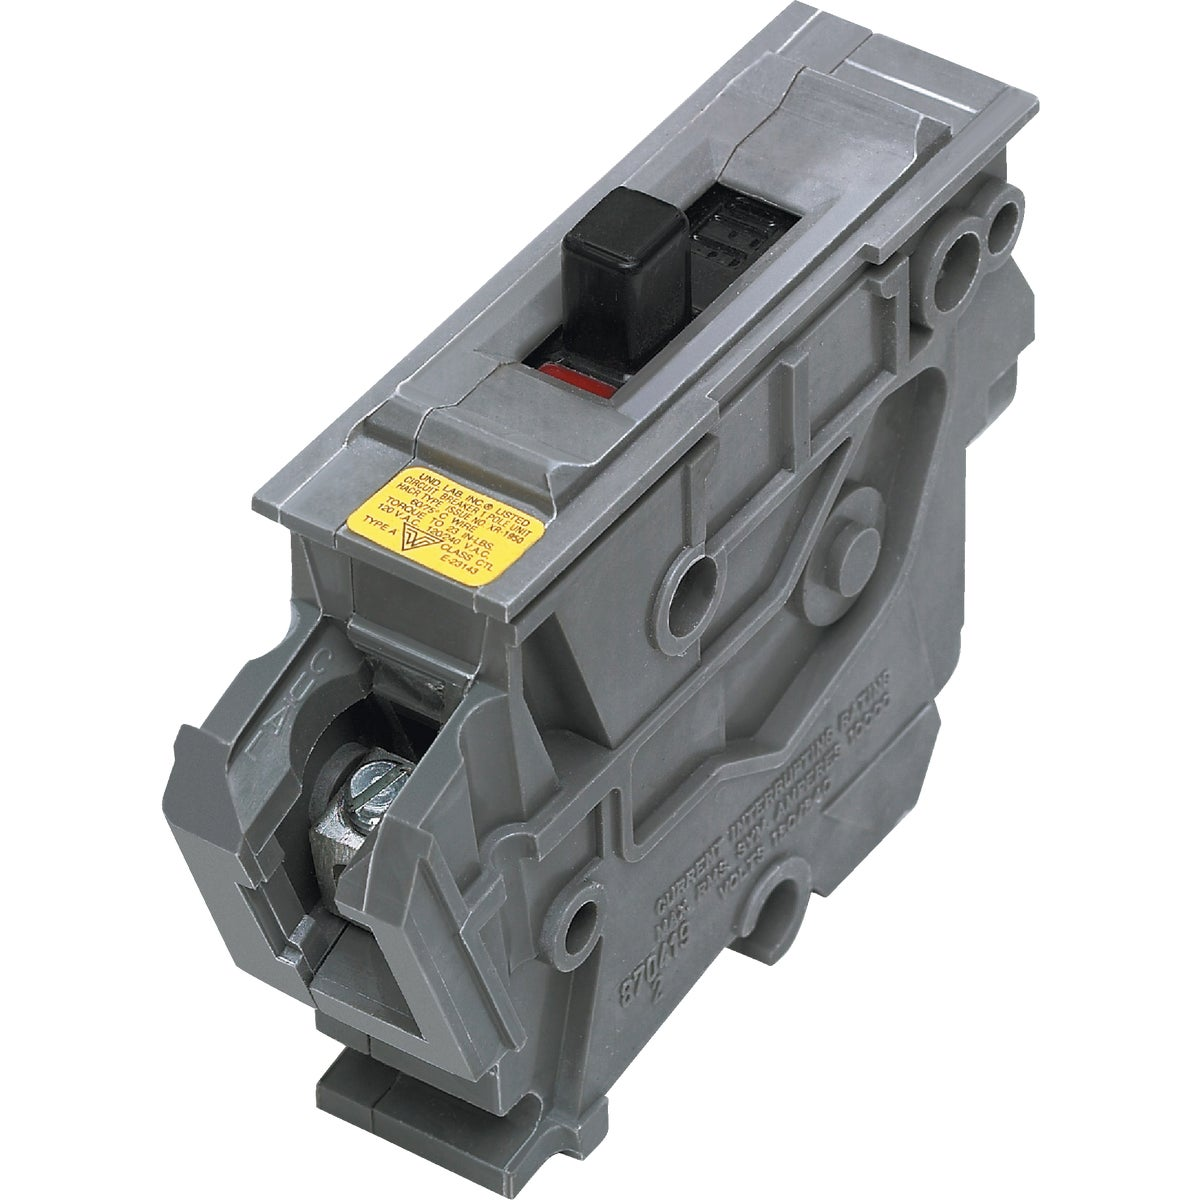 20A SP CIRCUIT BREAKER - WA20 by Connecticut Electric